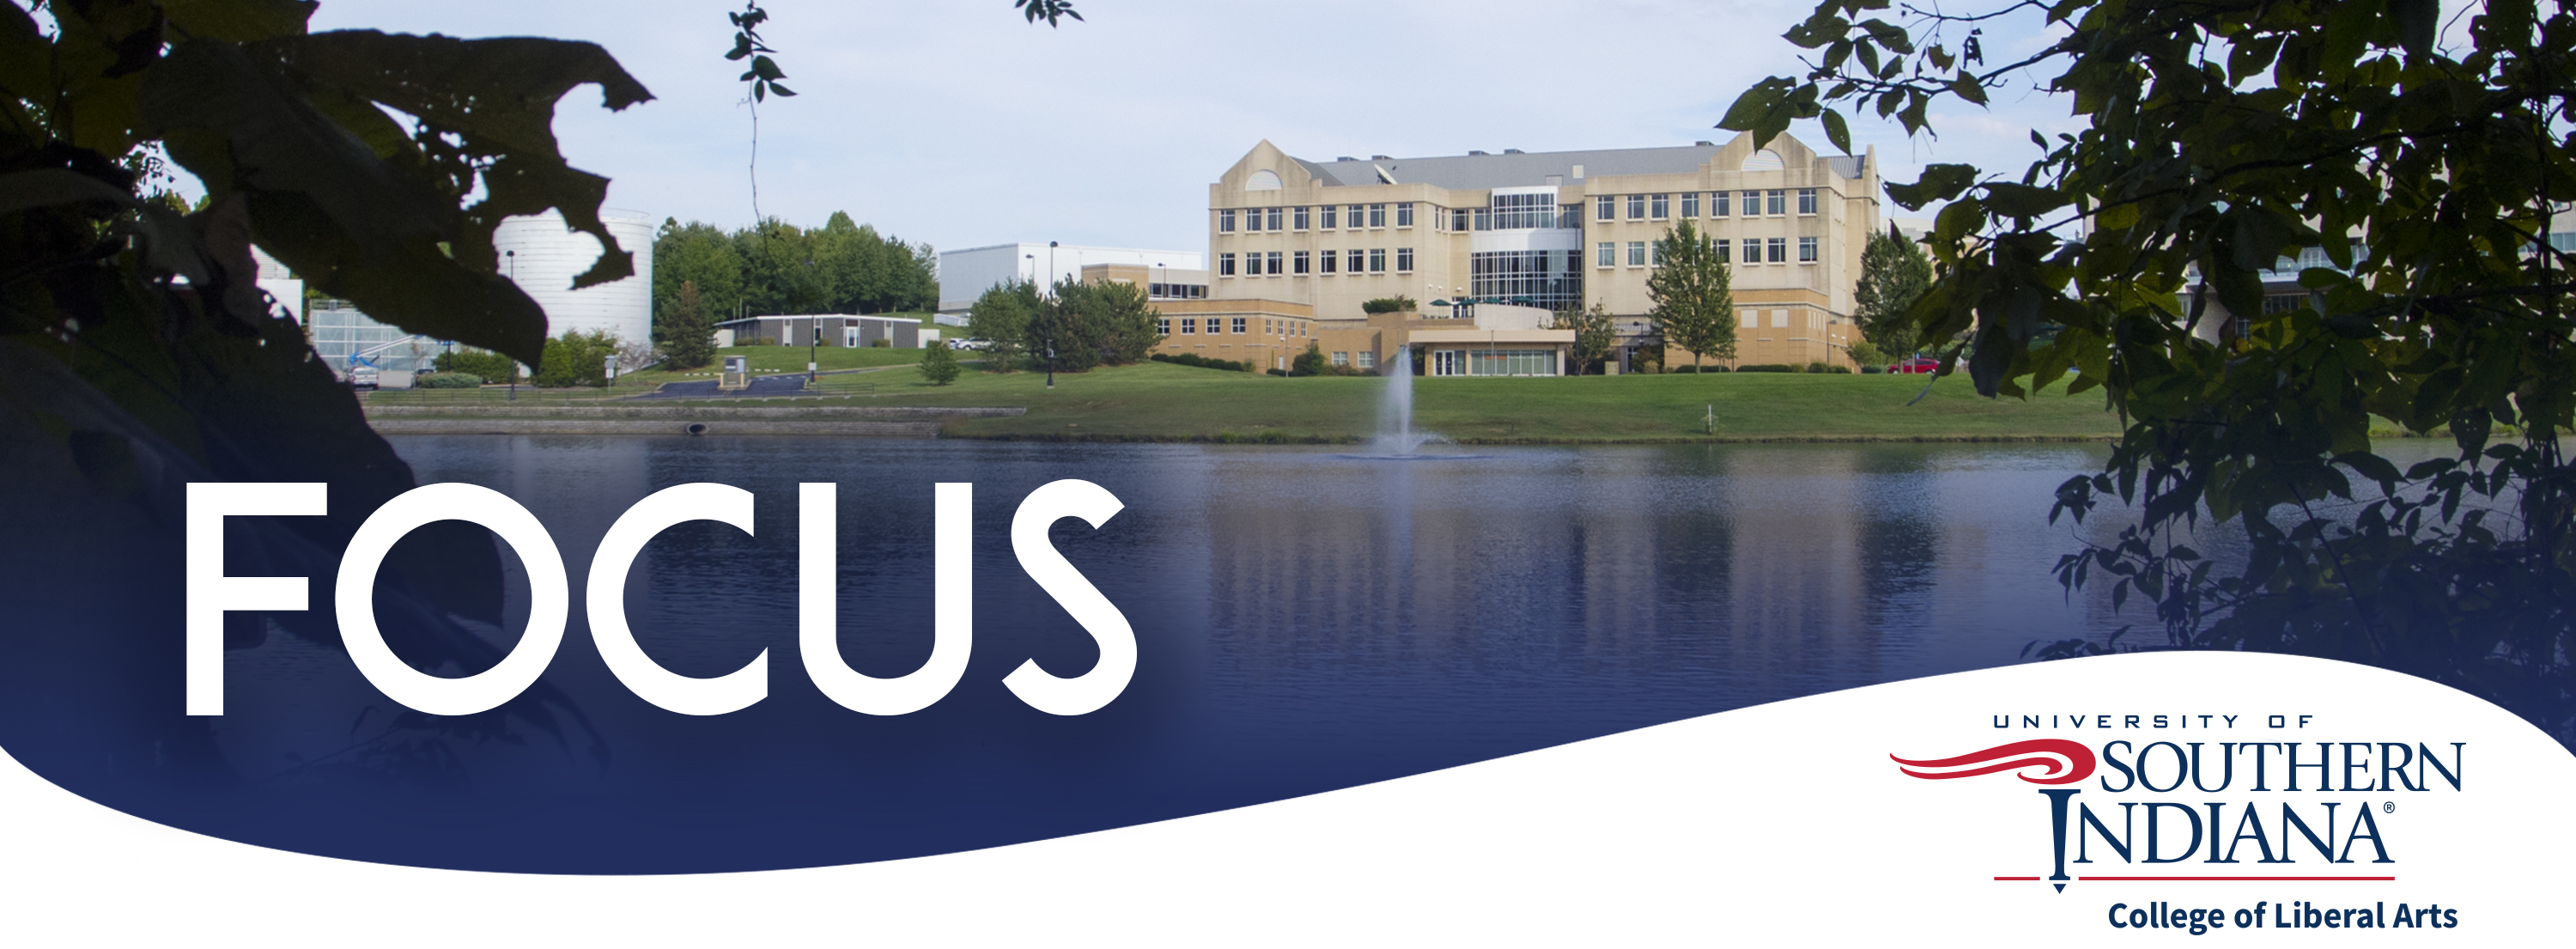 Focus on USI College of Liberal Arts